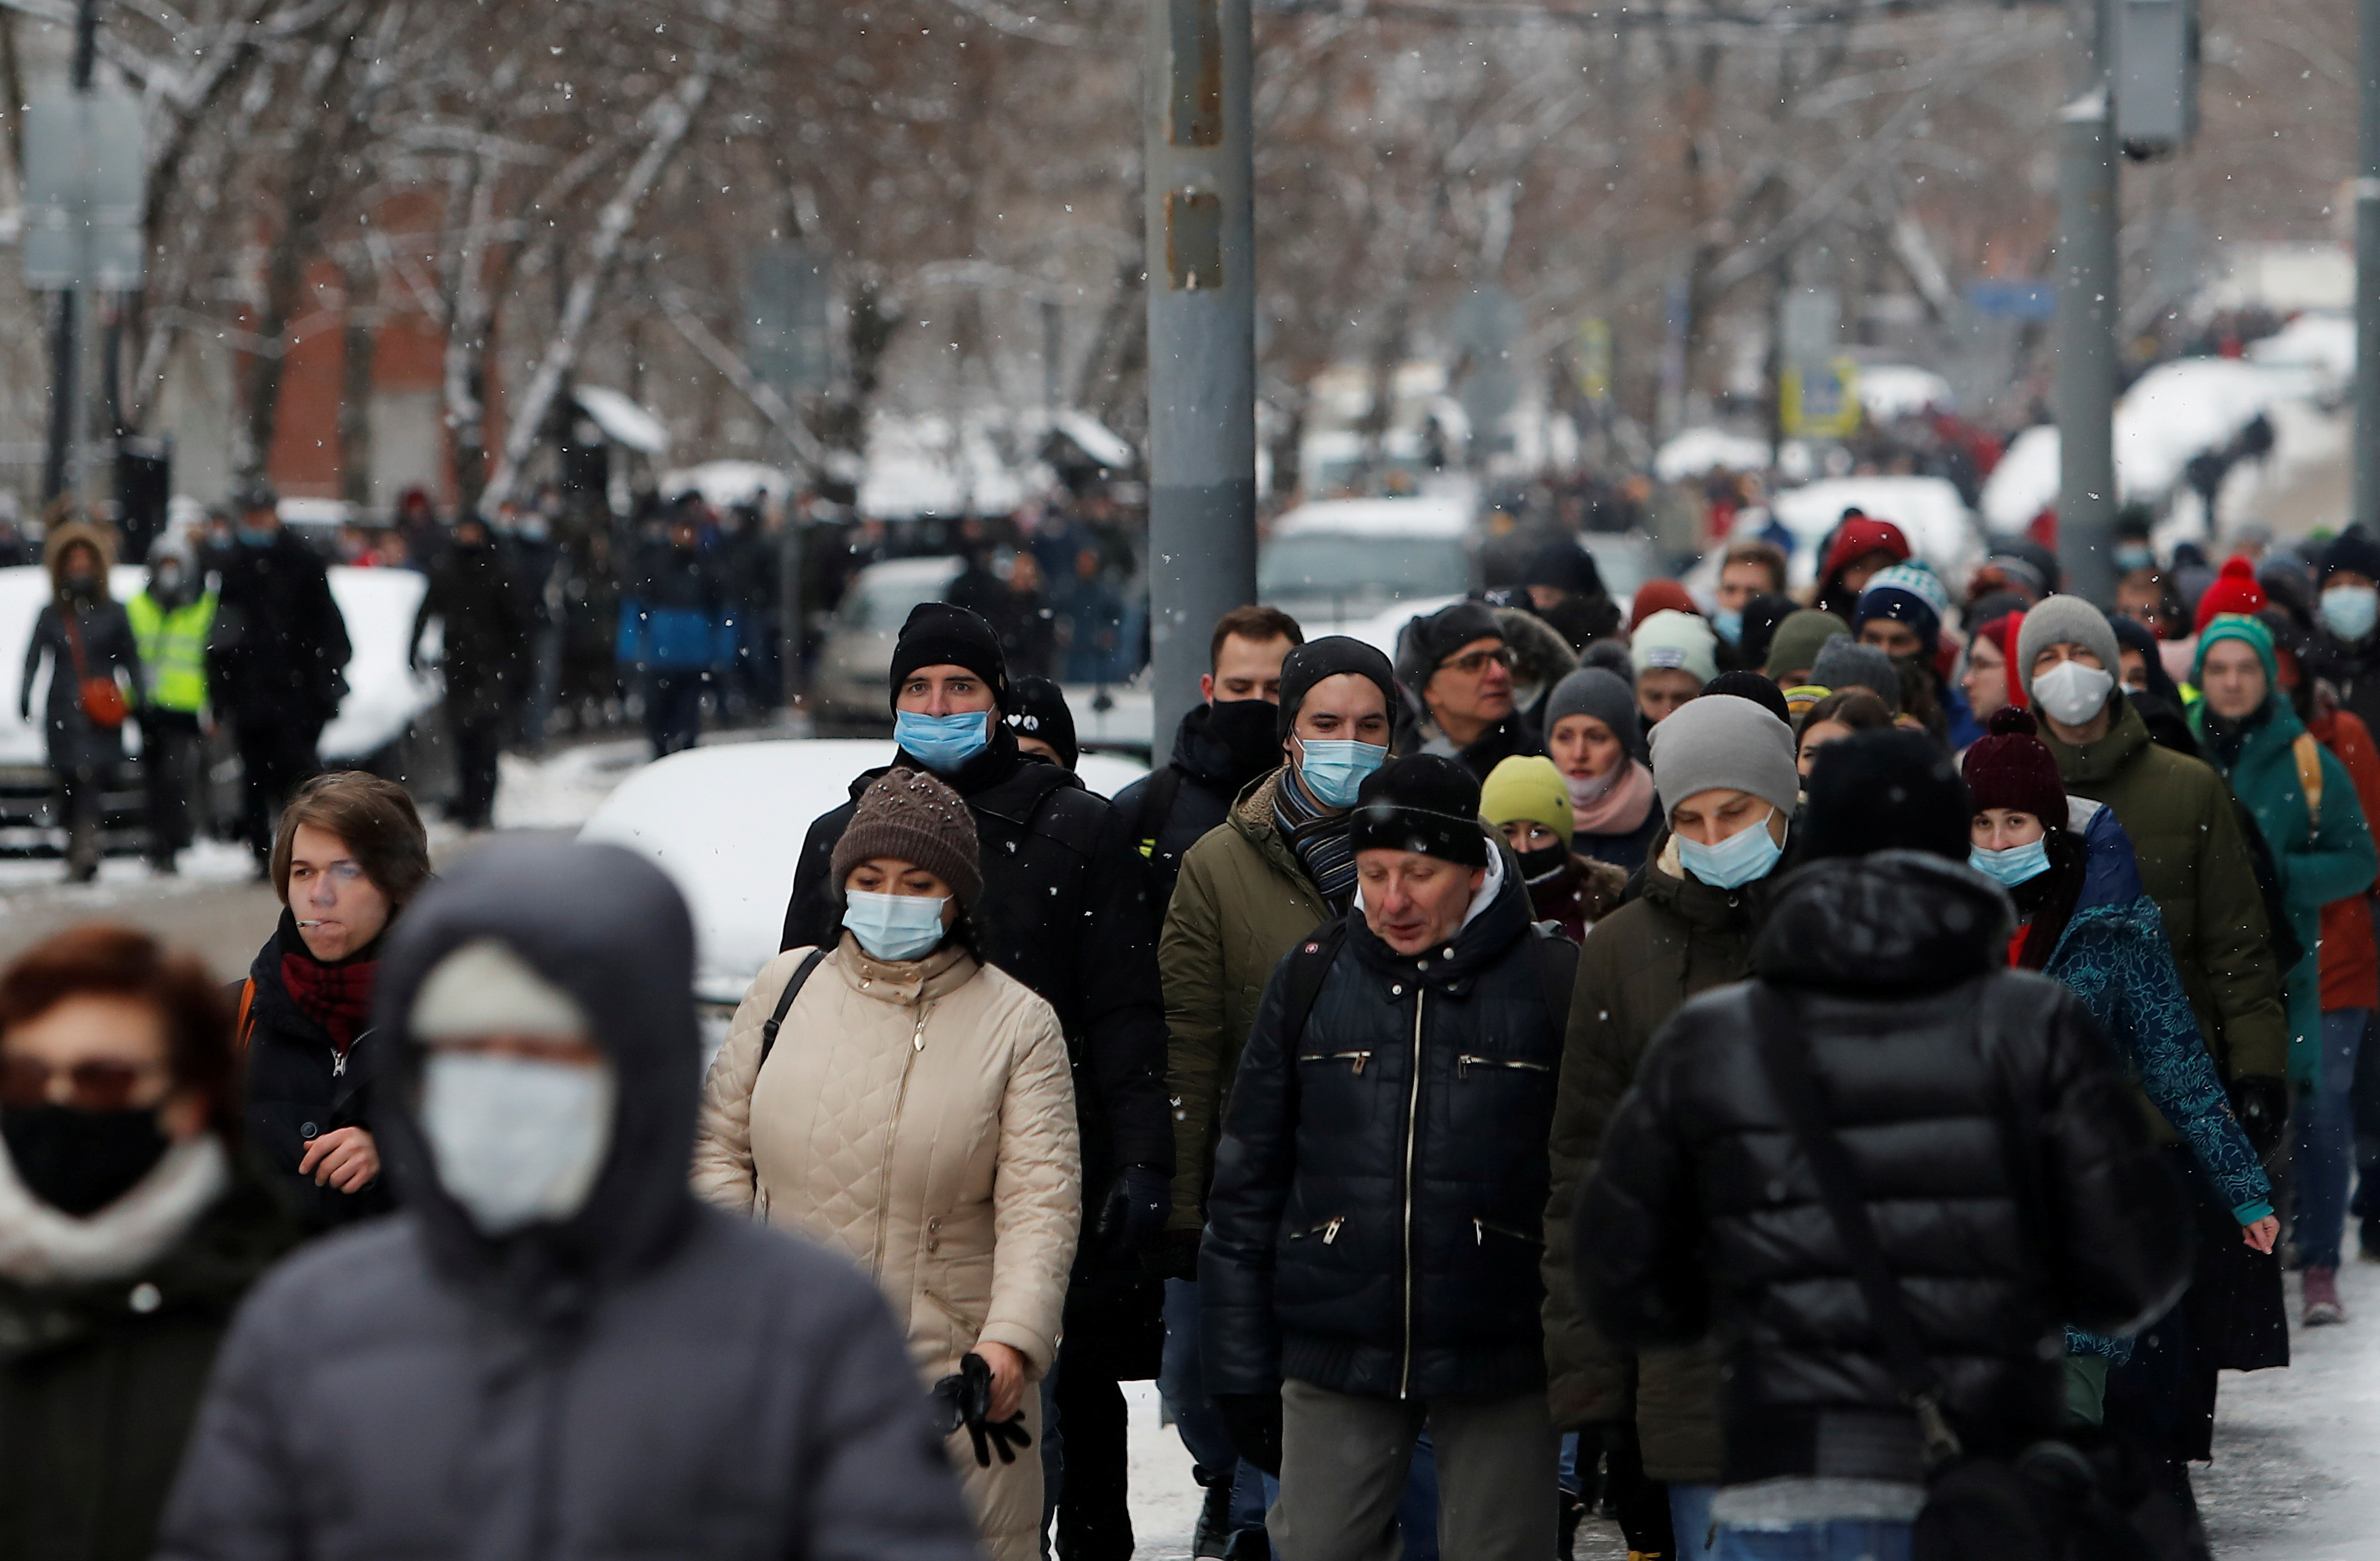 People walk on a street during a rally in support of jailed Russian opposition leader Alexei Navalny in Moscow, Russia January 31, 2021. REUTERS/Maxim Shemetov